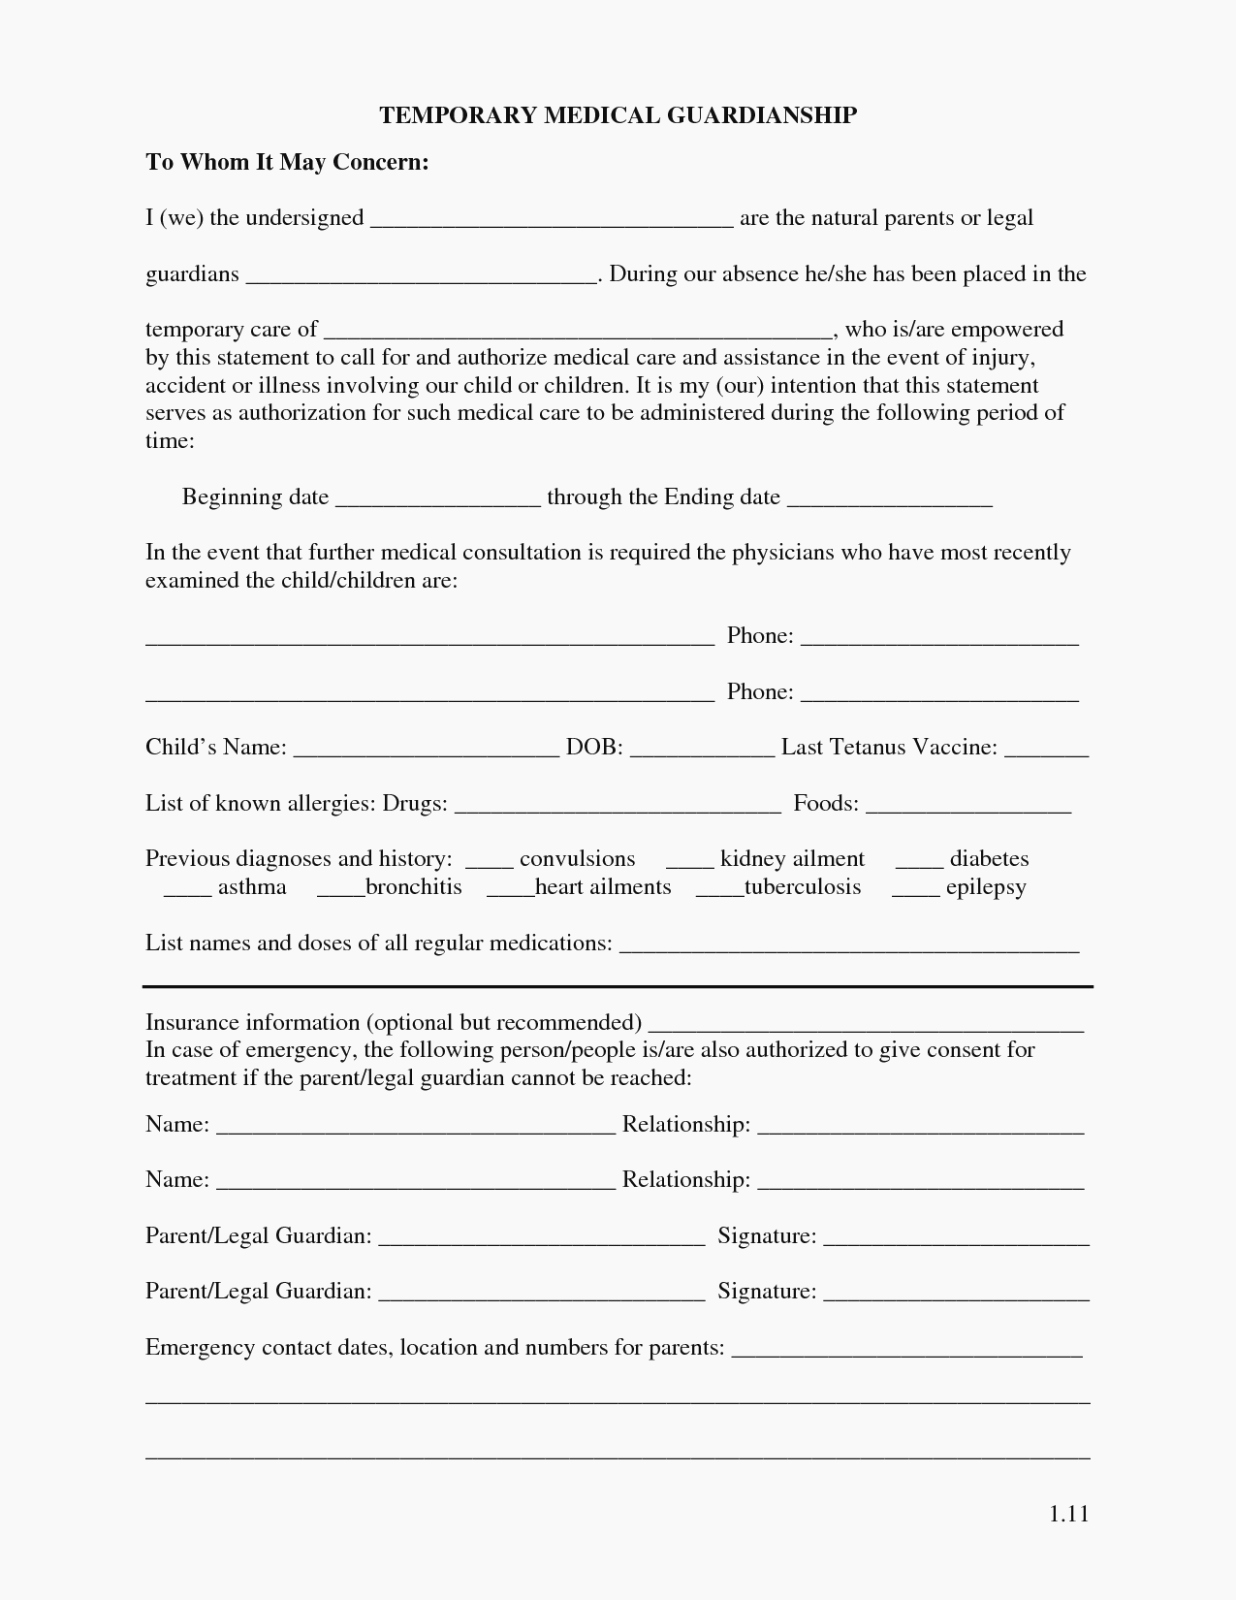 Free Printable Child Guardianship forms Fresh attending Legal Temporary Custody